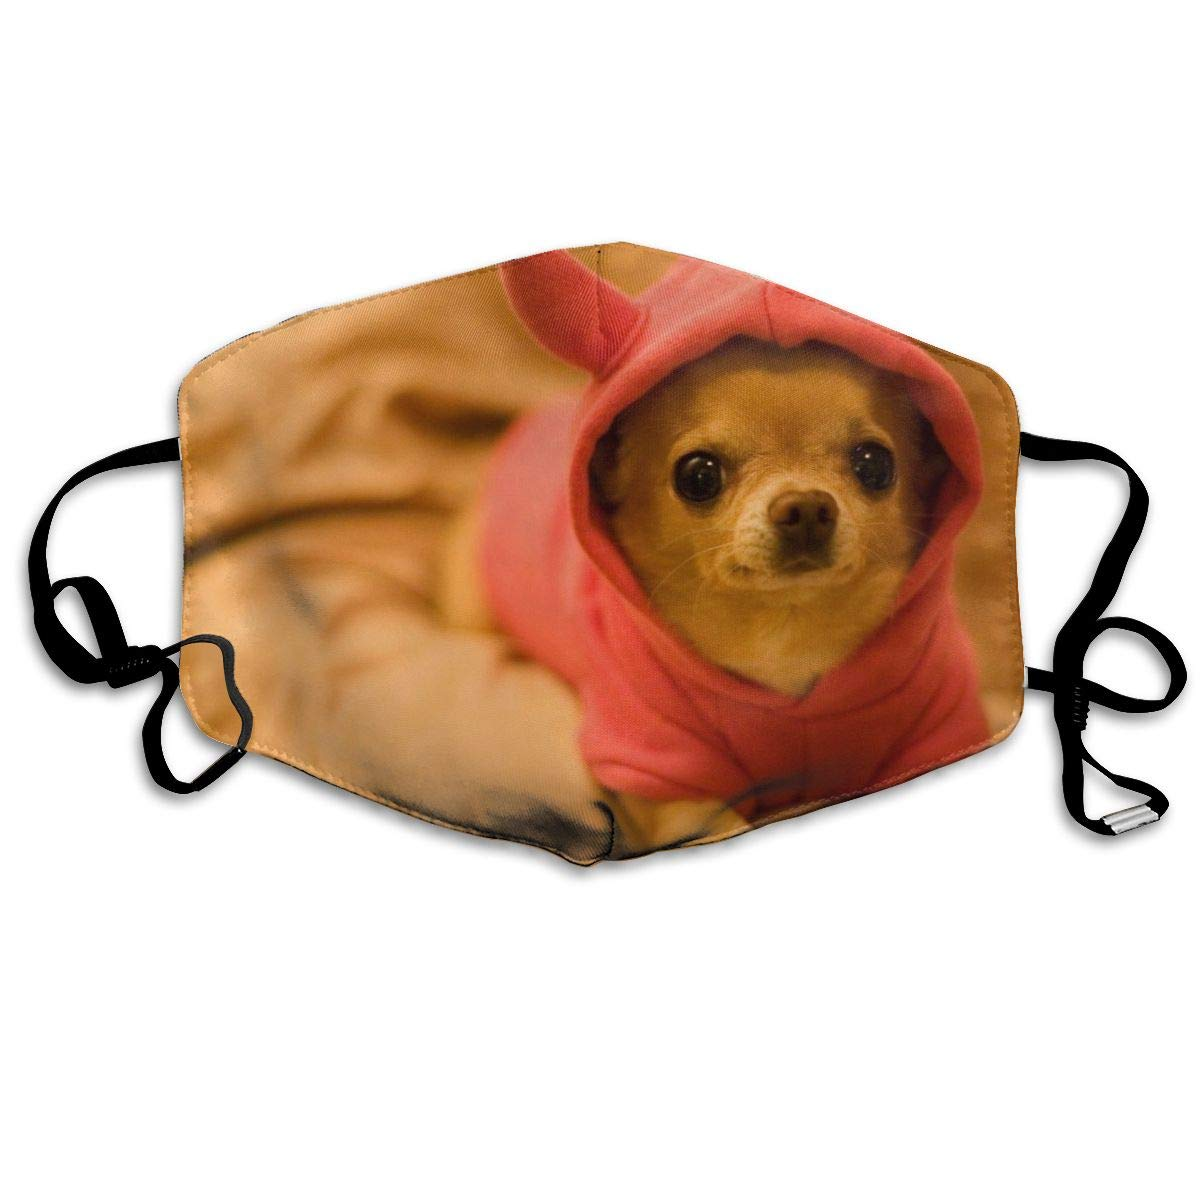 Unisex Breathable Cut Chihuahua Puppy Dog Kids Mouth Mask, Adjustable Earloop   Anti Dust Pollution Face Mask For Running